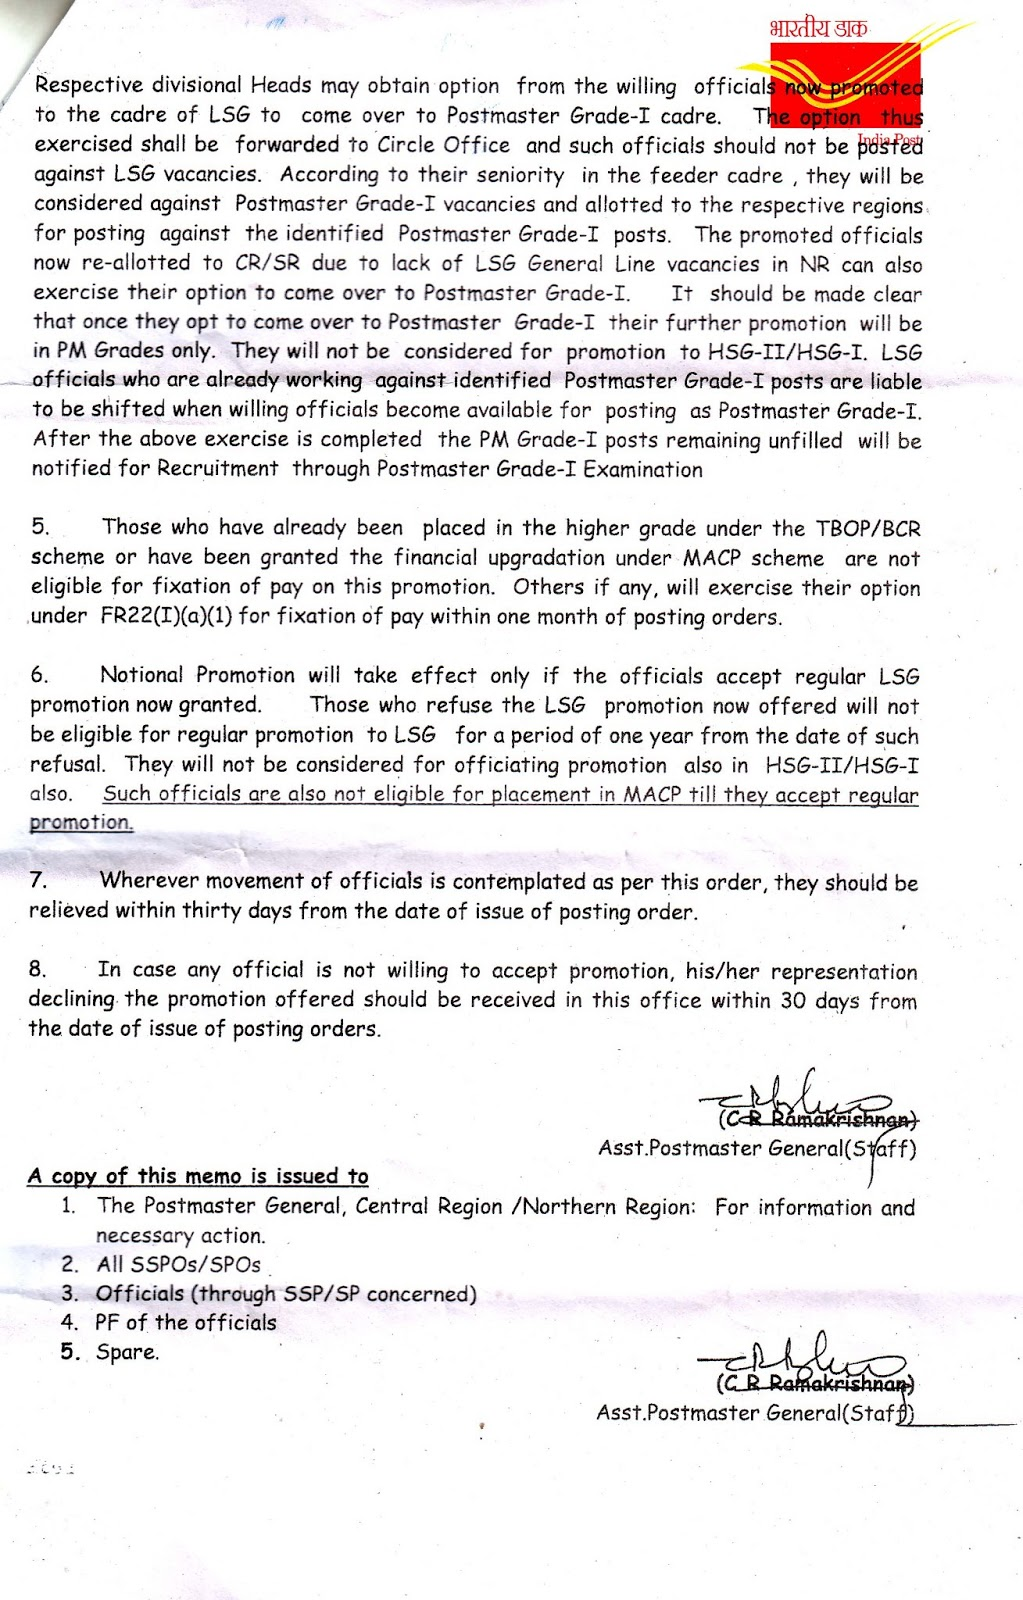 kerala circle lsg promotions cpmg keral asking lsg officials to kerala circle lsg promotions cpmg keral asking lsg officials to opt for postmaster grade1 is it correct please post your comments